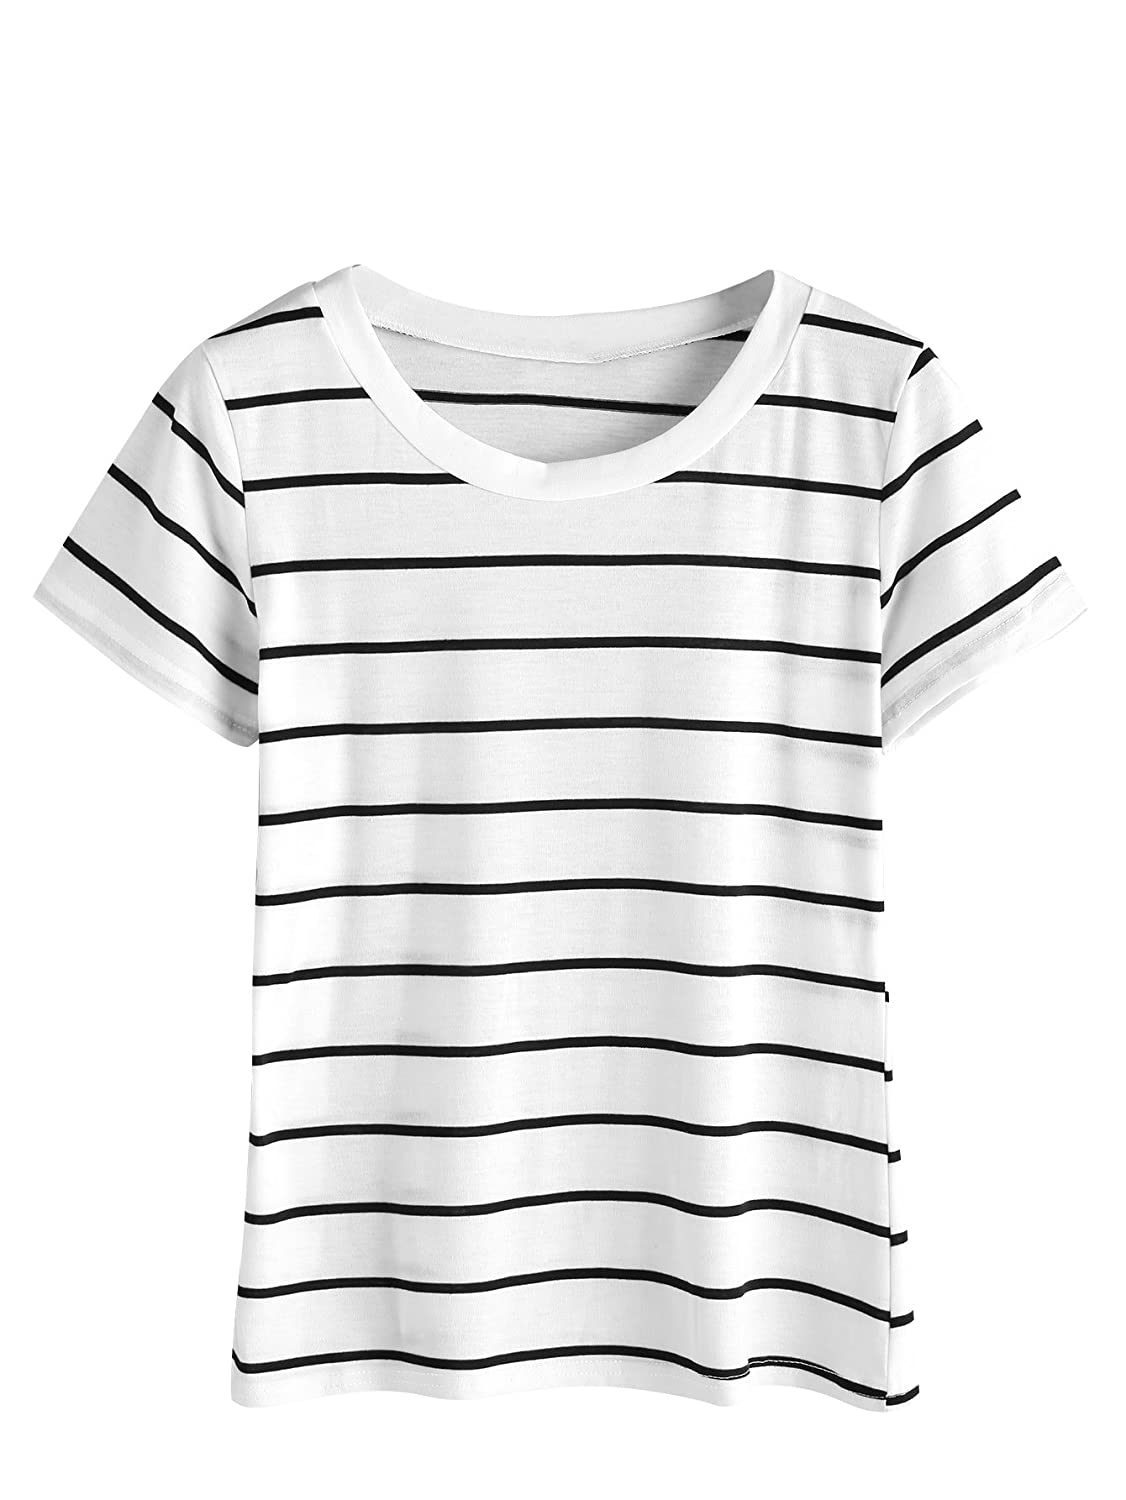 1940s Blouses and Tops MakeMeChic Womens Casual Loose Striped Short Sleeve T-Shirt Tee Top $12.99 AT vintagedancer.com